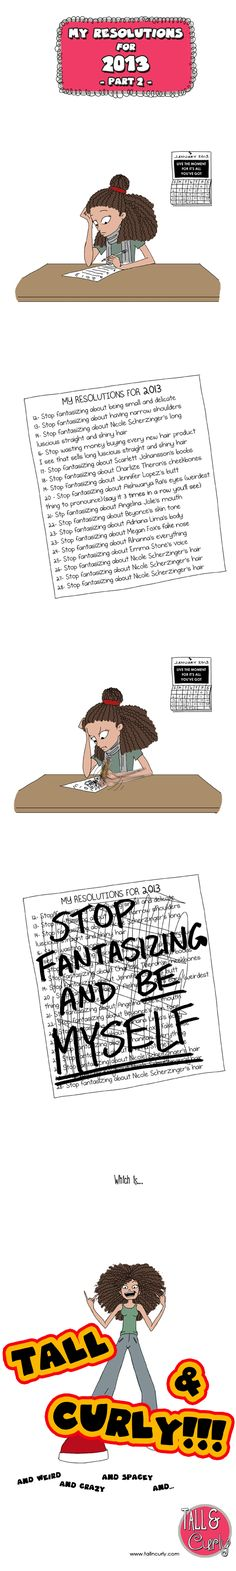 My resolutions for 2013 - Part 2...I Love her comics